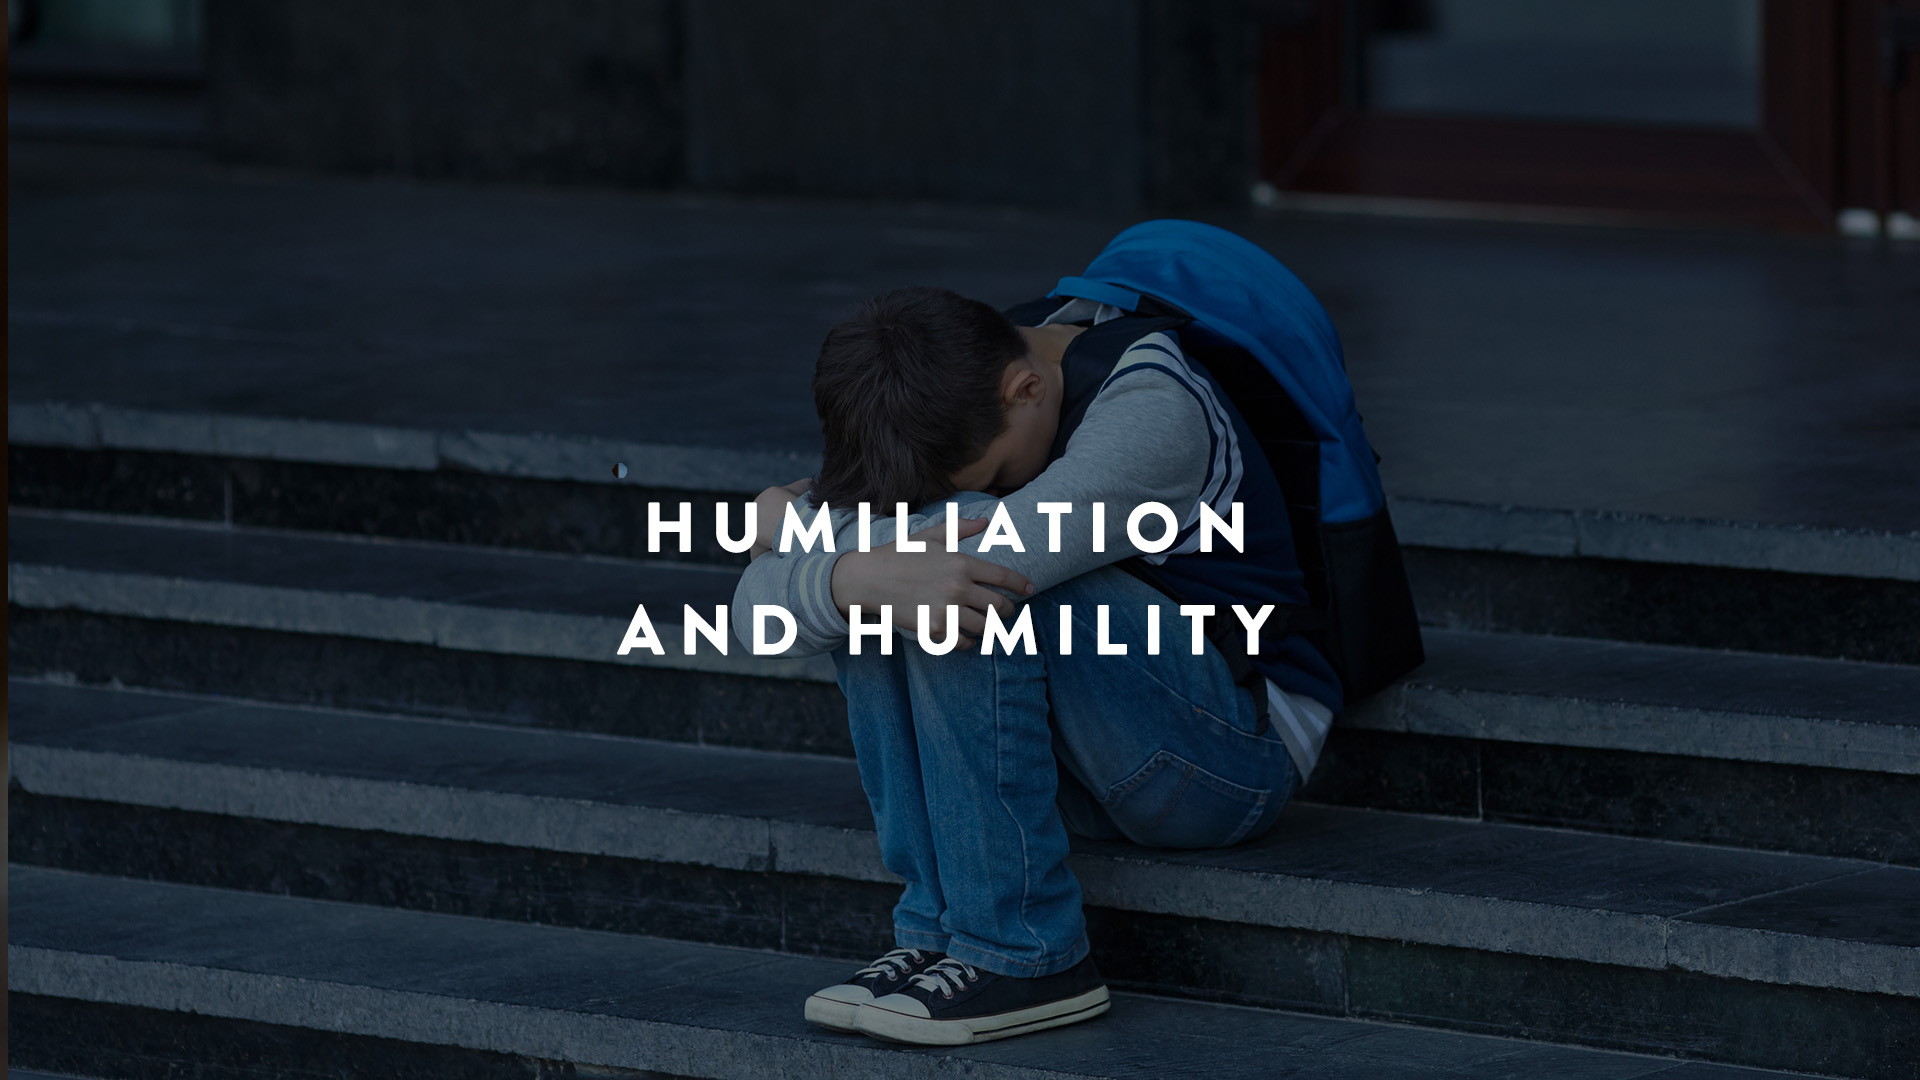 Humiliation and humility